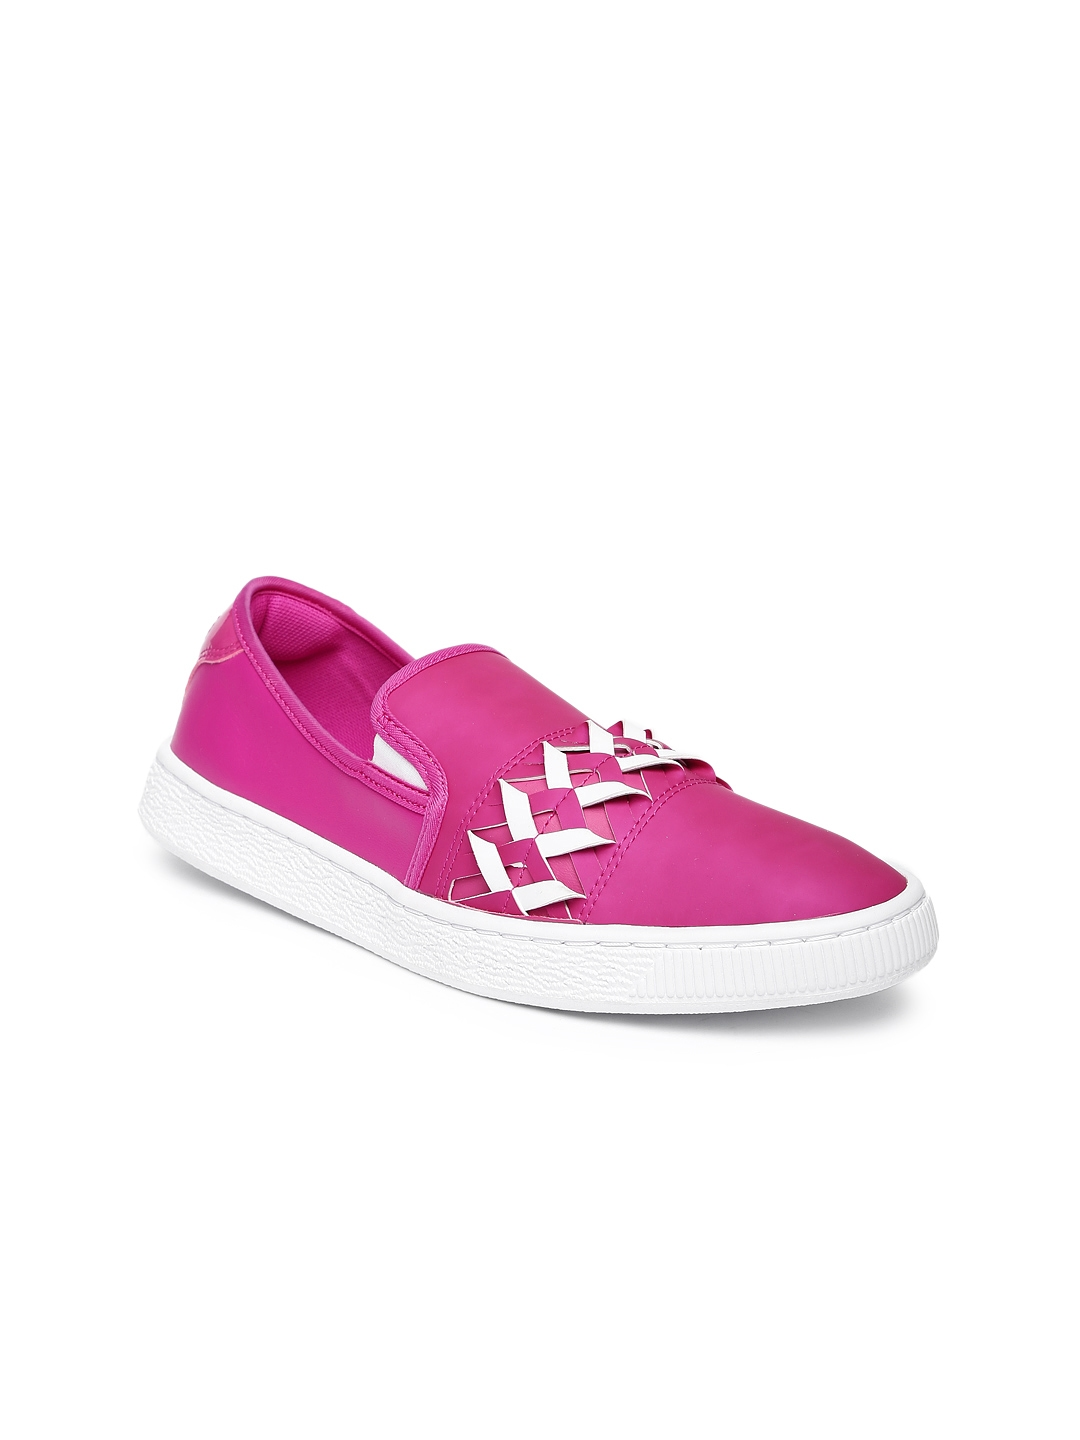 Buy Puma Women Pink Basket Cut Out Slip Ons - Casual Shoes for Women ... 873601715